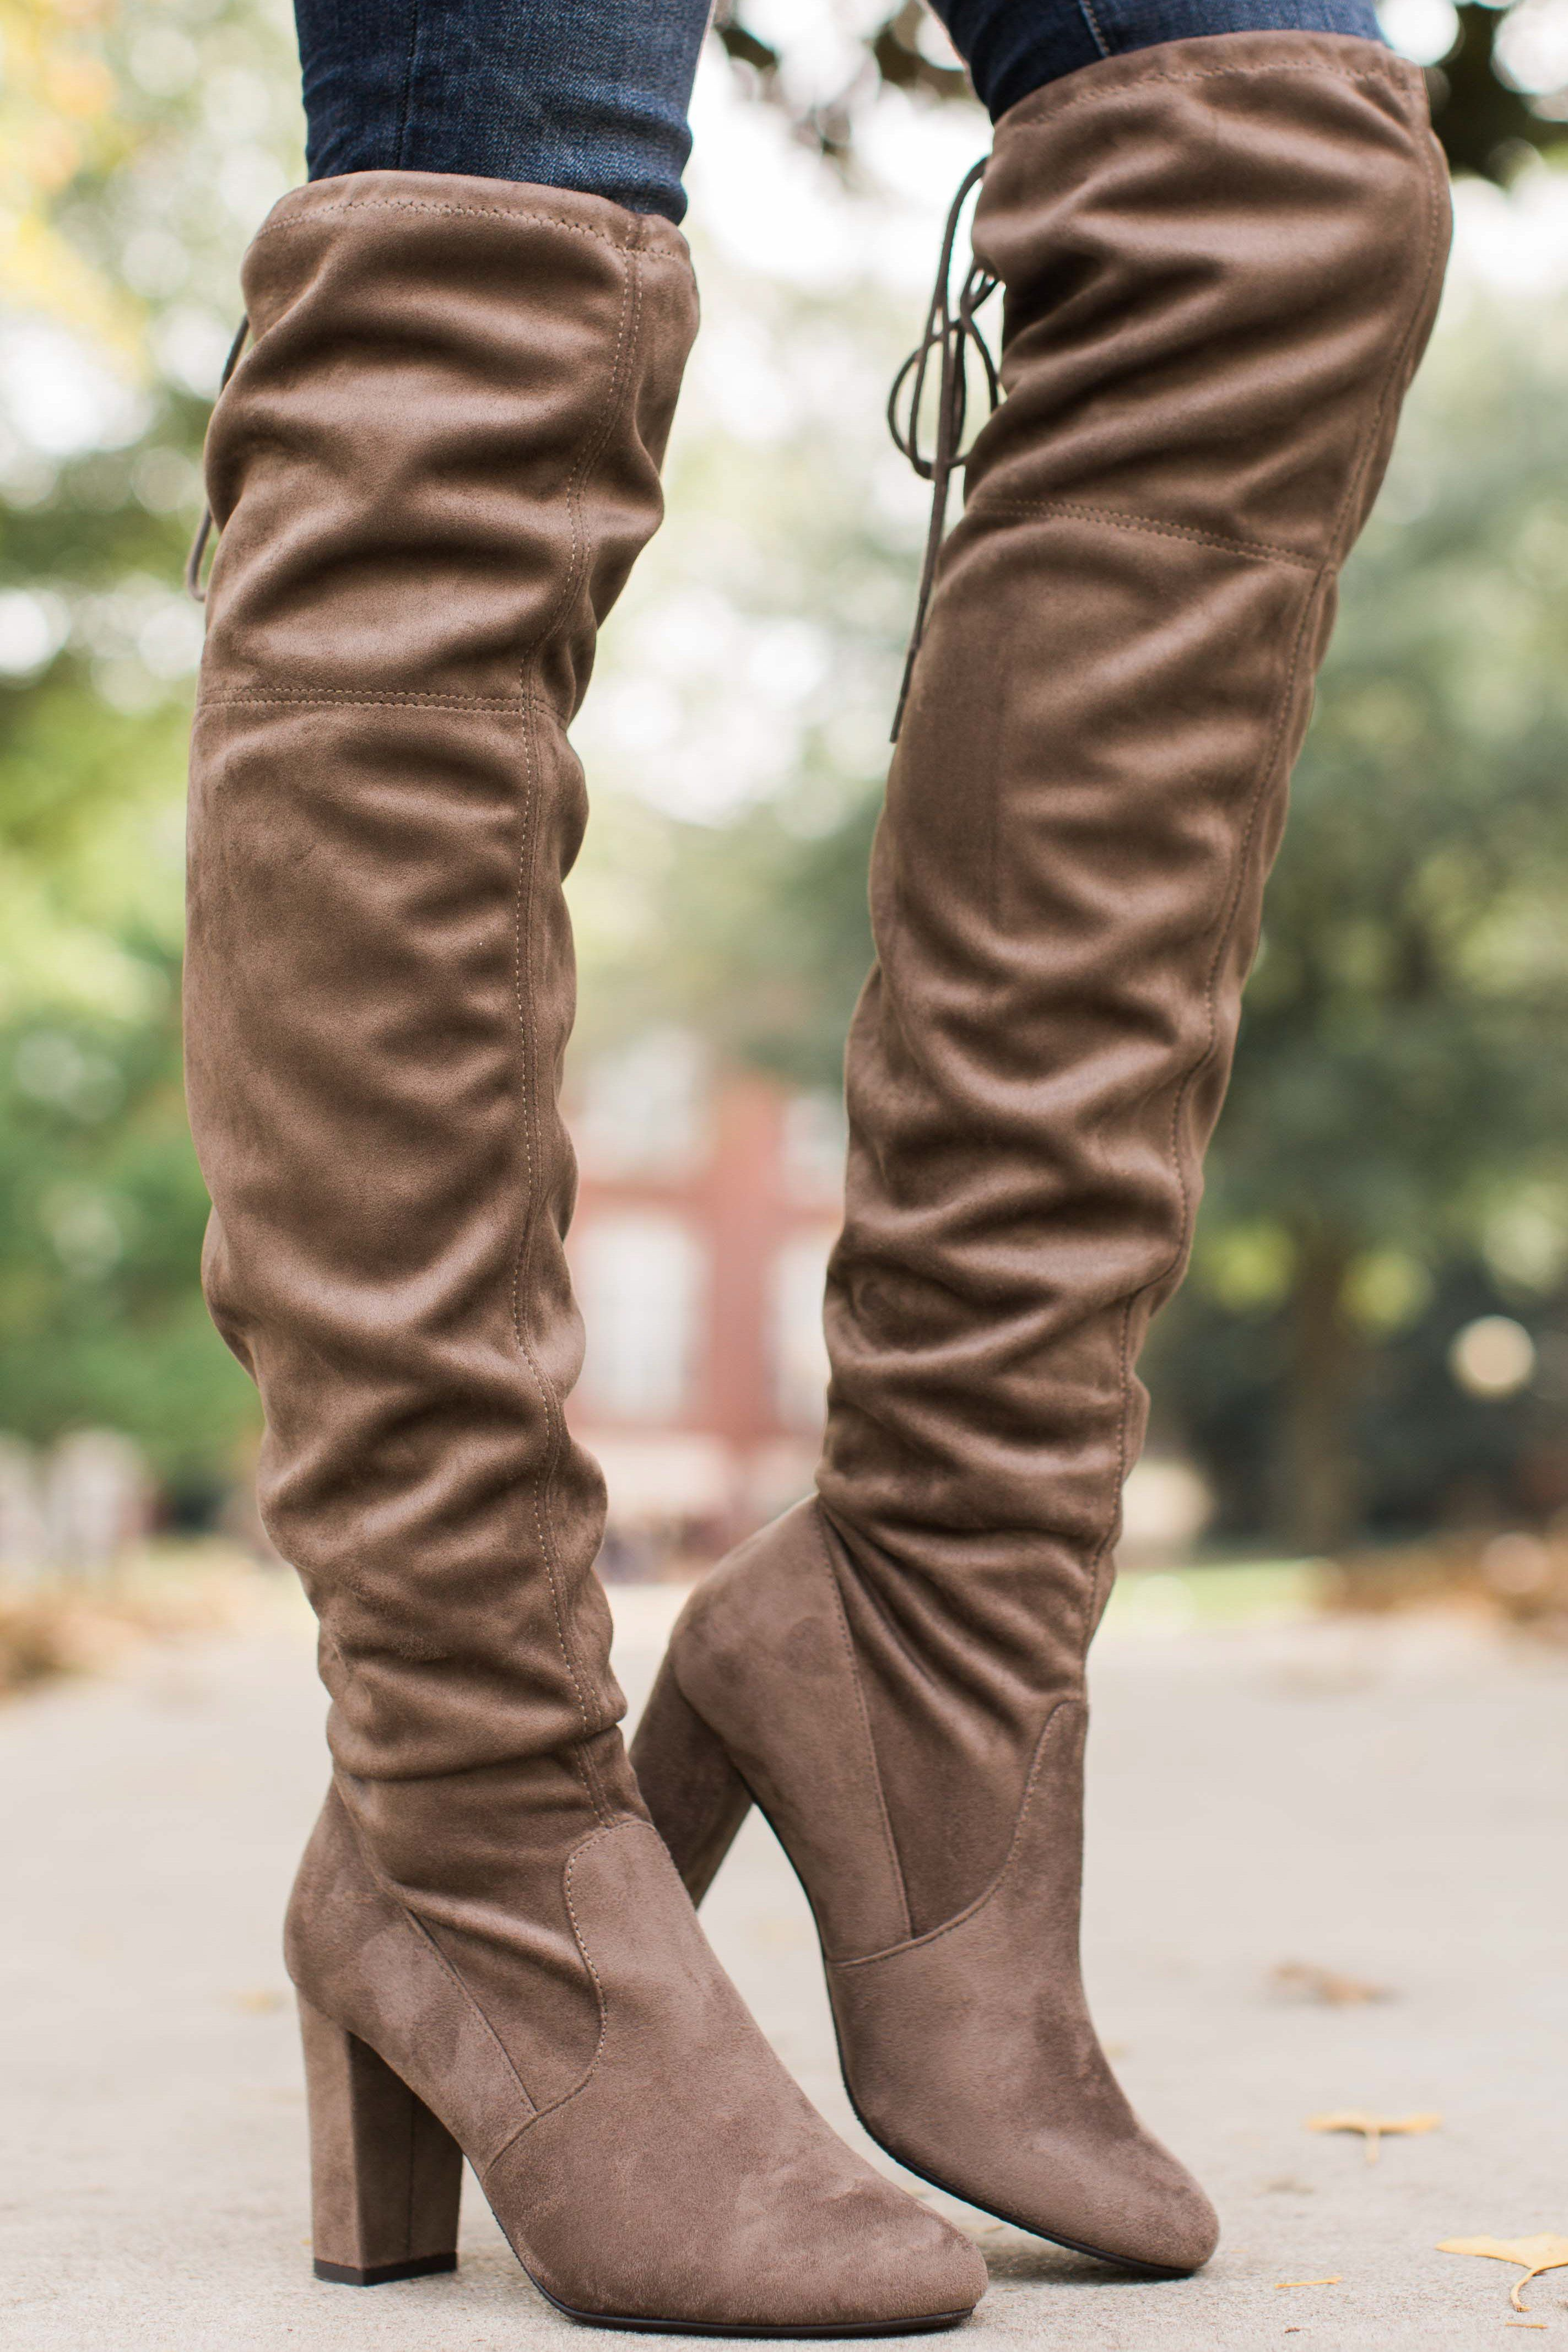 bcfa04426 Great Strides Taupe Knee High Boots, formed from soft, stretchy vegan suede  and feature an almond toe and a block heel. Boots feature laces that tie at  the ...